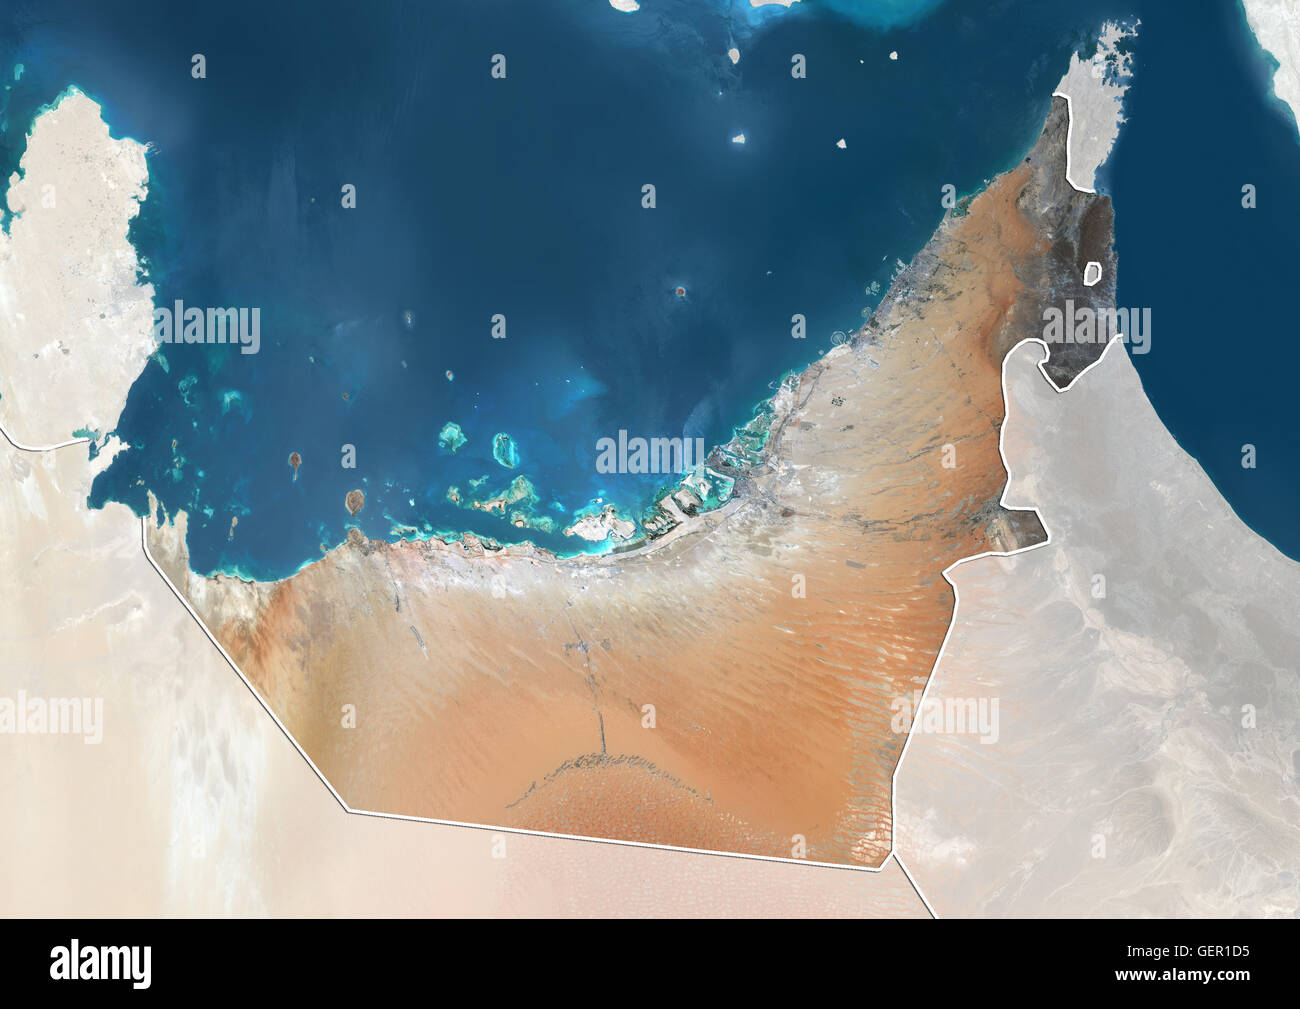 satellite view of the united arab emirates with country boundaries and mask the image shows the emirates of dubai sharjah ajman umm al quwain